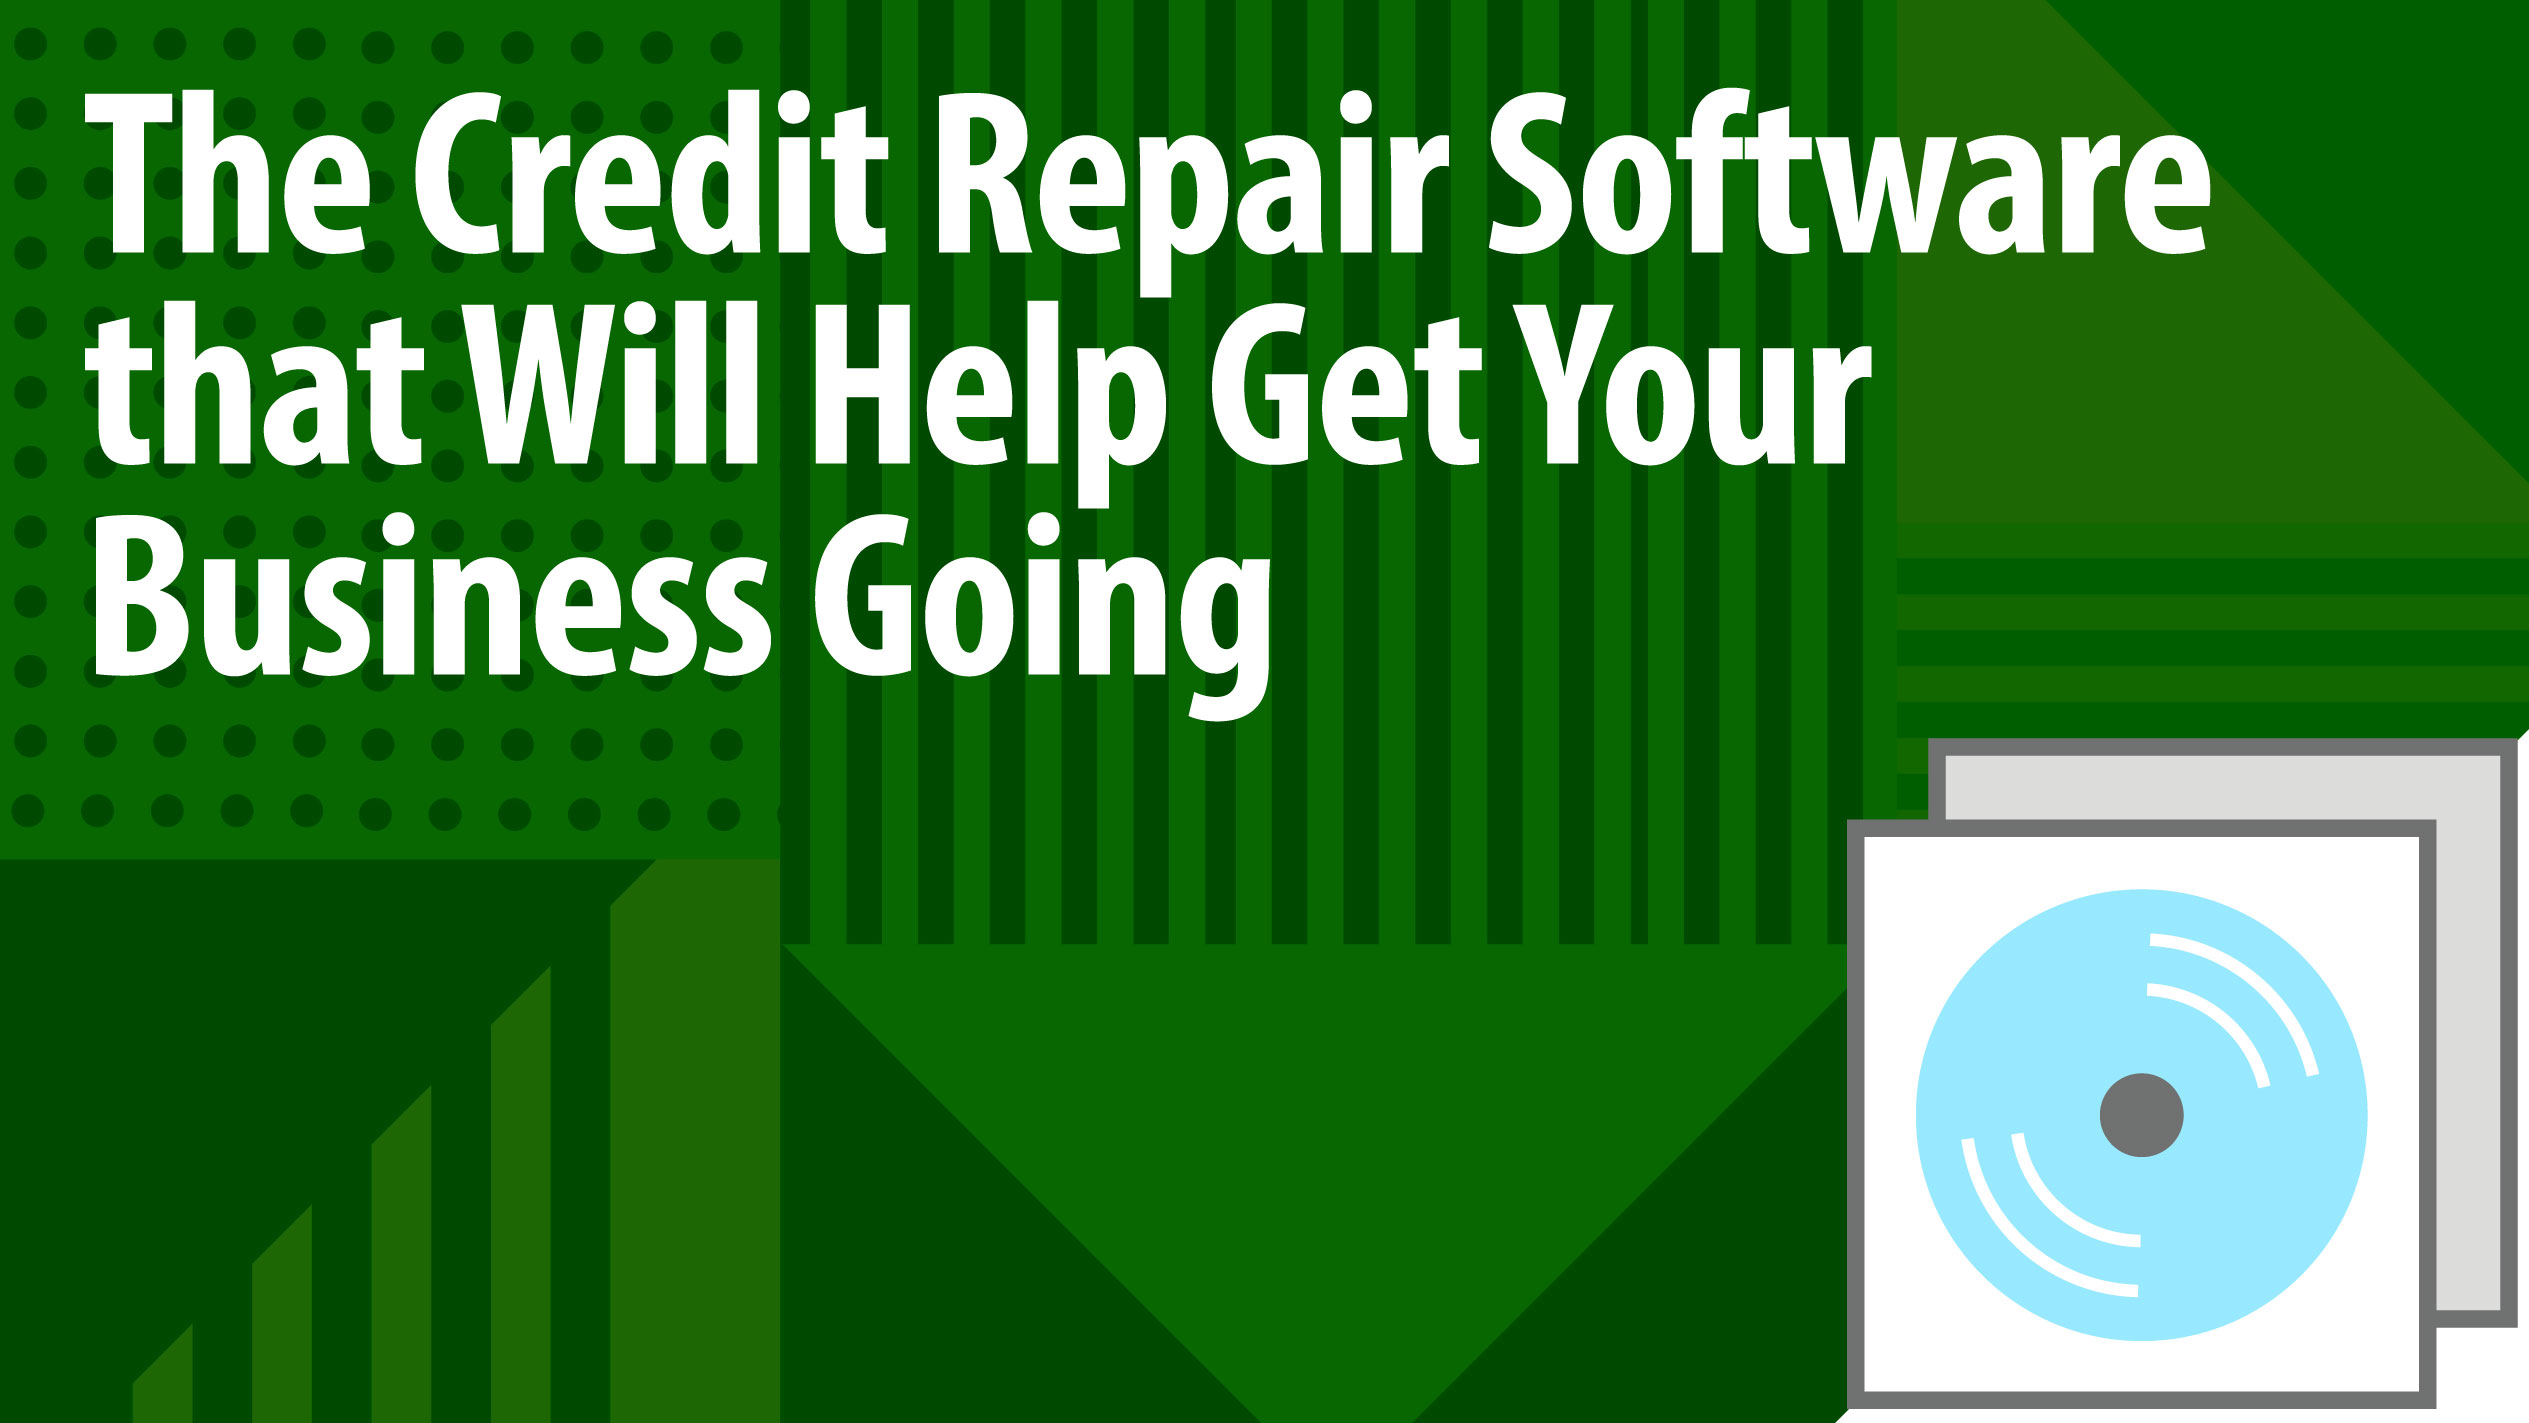 The Credit Repair Software that Will Help Get Your Business Going